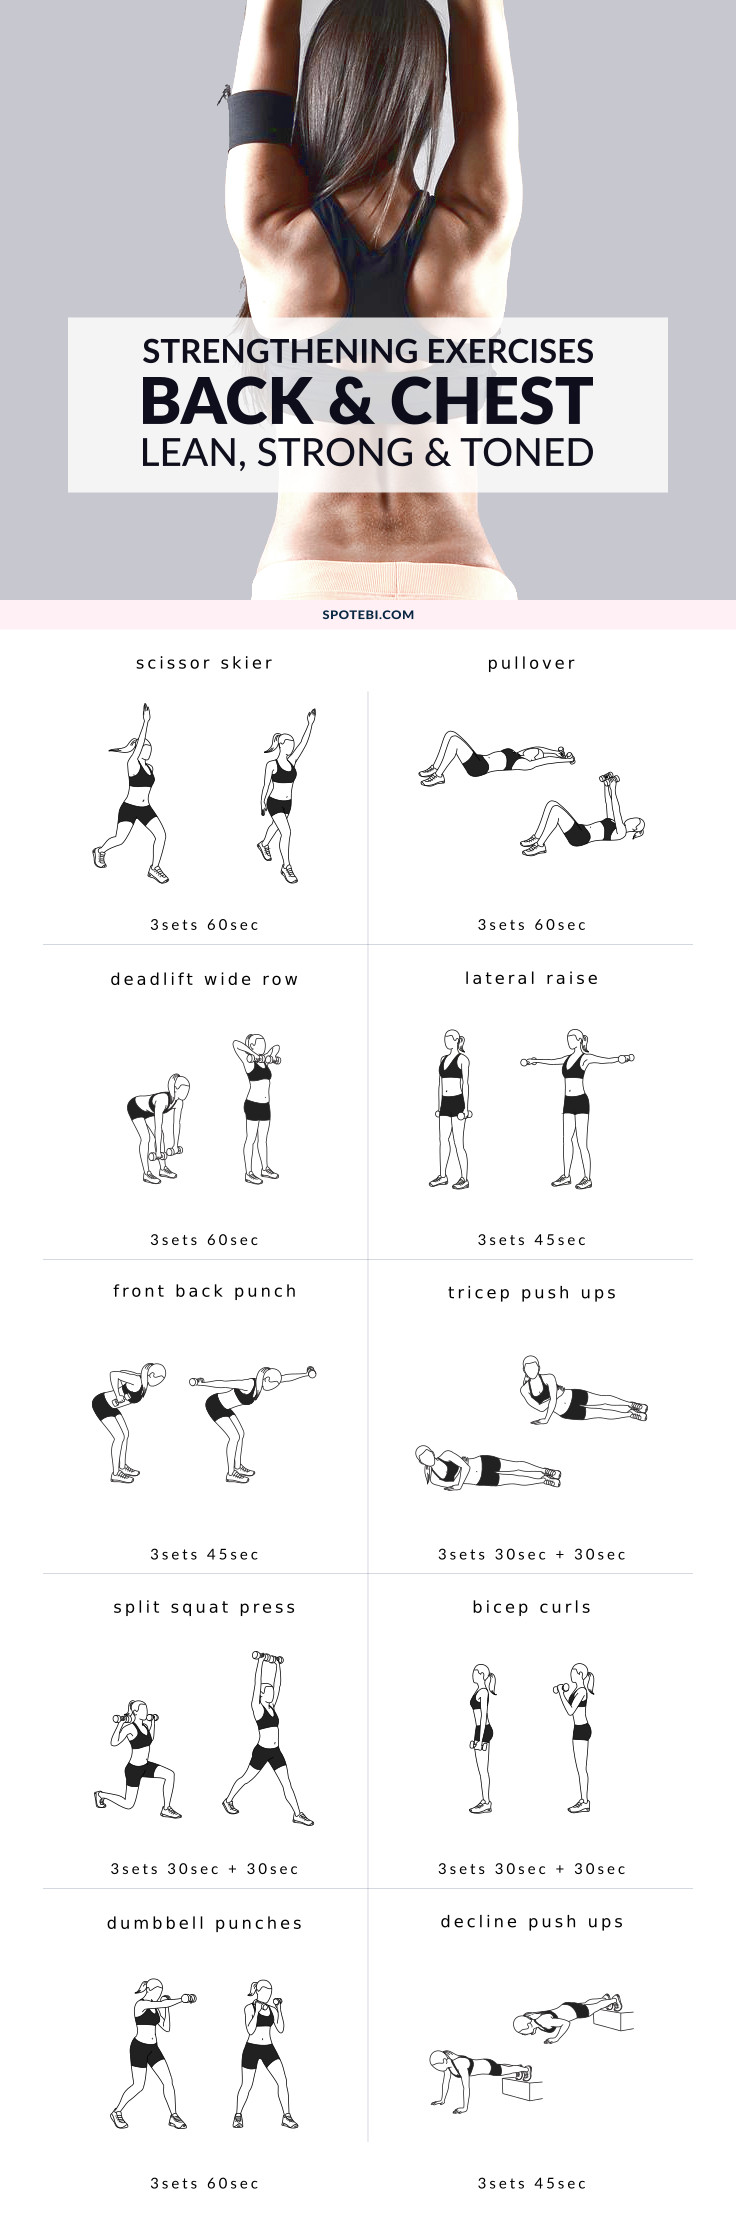 Try These Chest And Back Strengthening Exercises For Women To Help